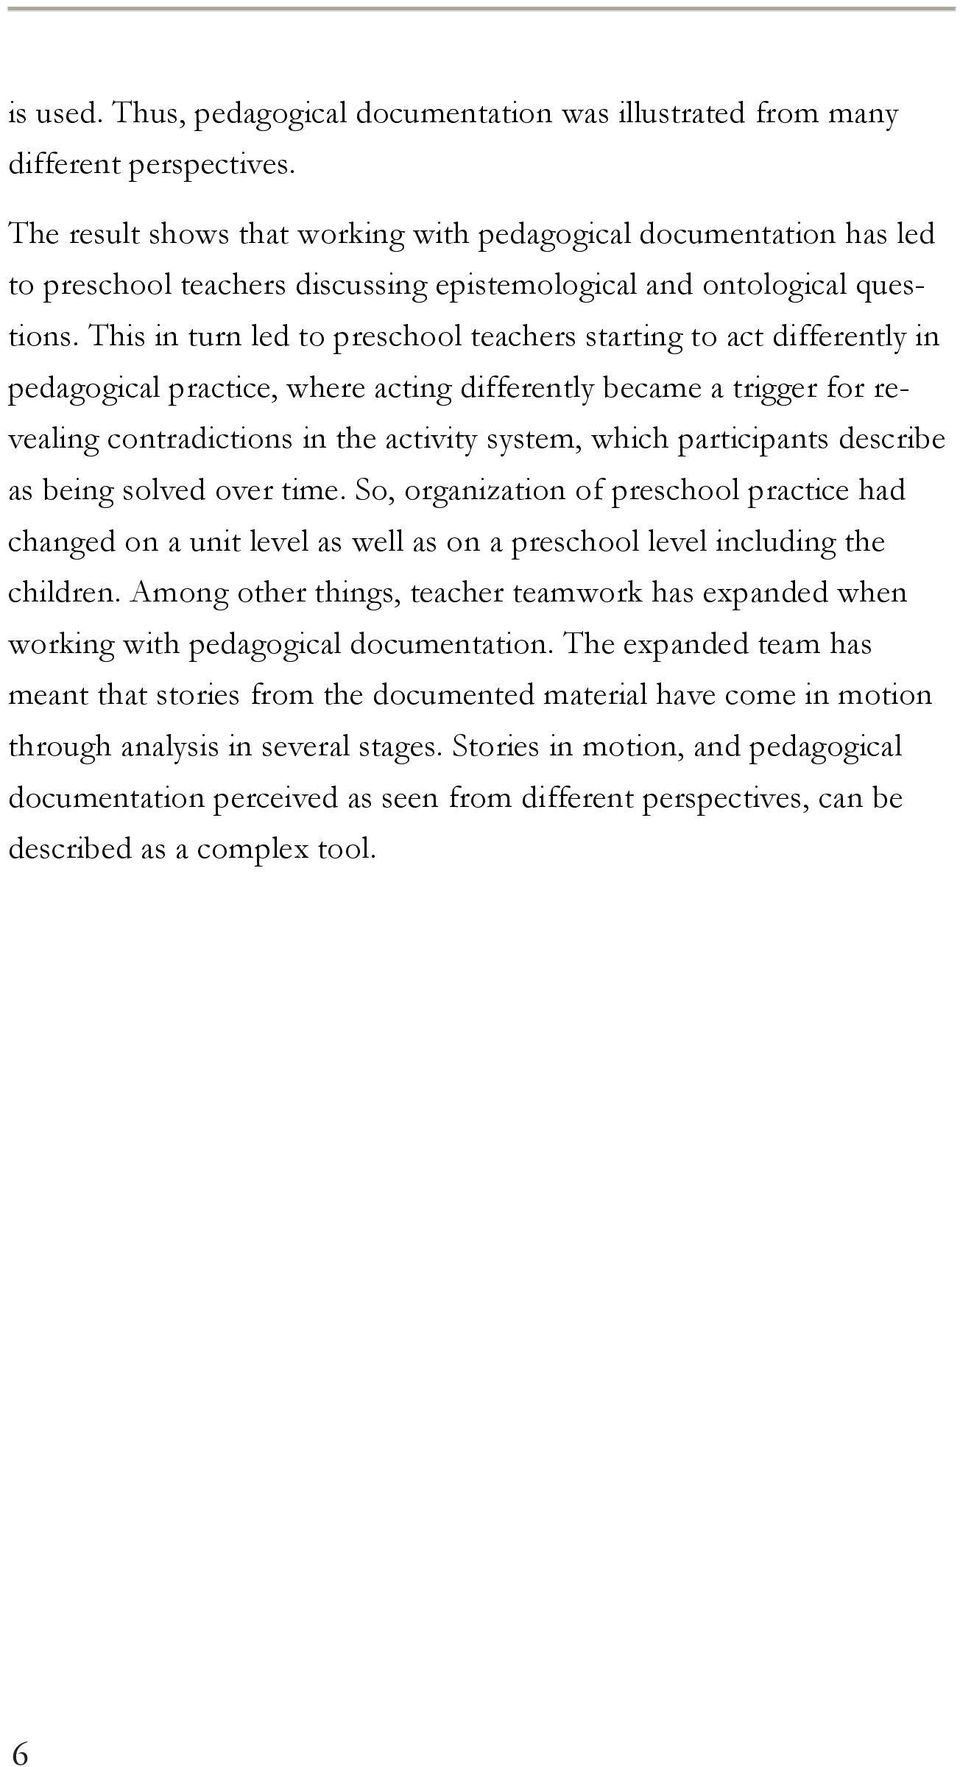 This in turn led to preschool teachers starting to act differently in pedagogical practice, where acting differently became a trigger for revealing contradictions in the activity system, which